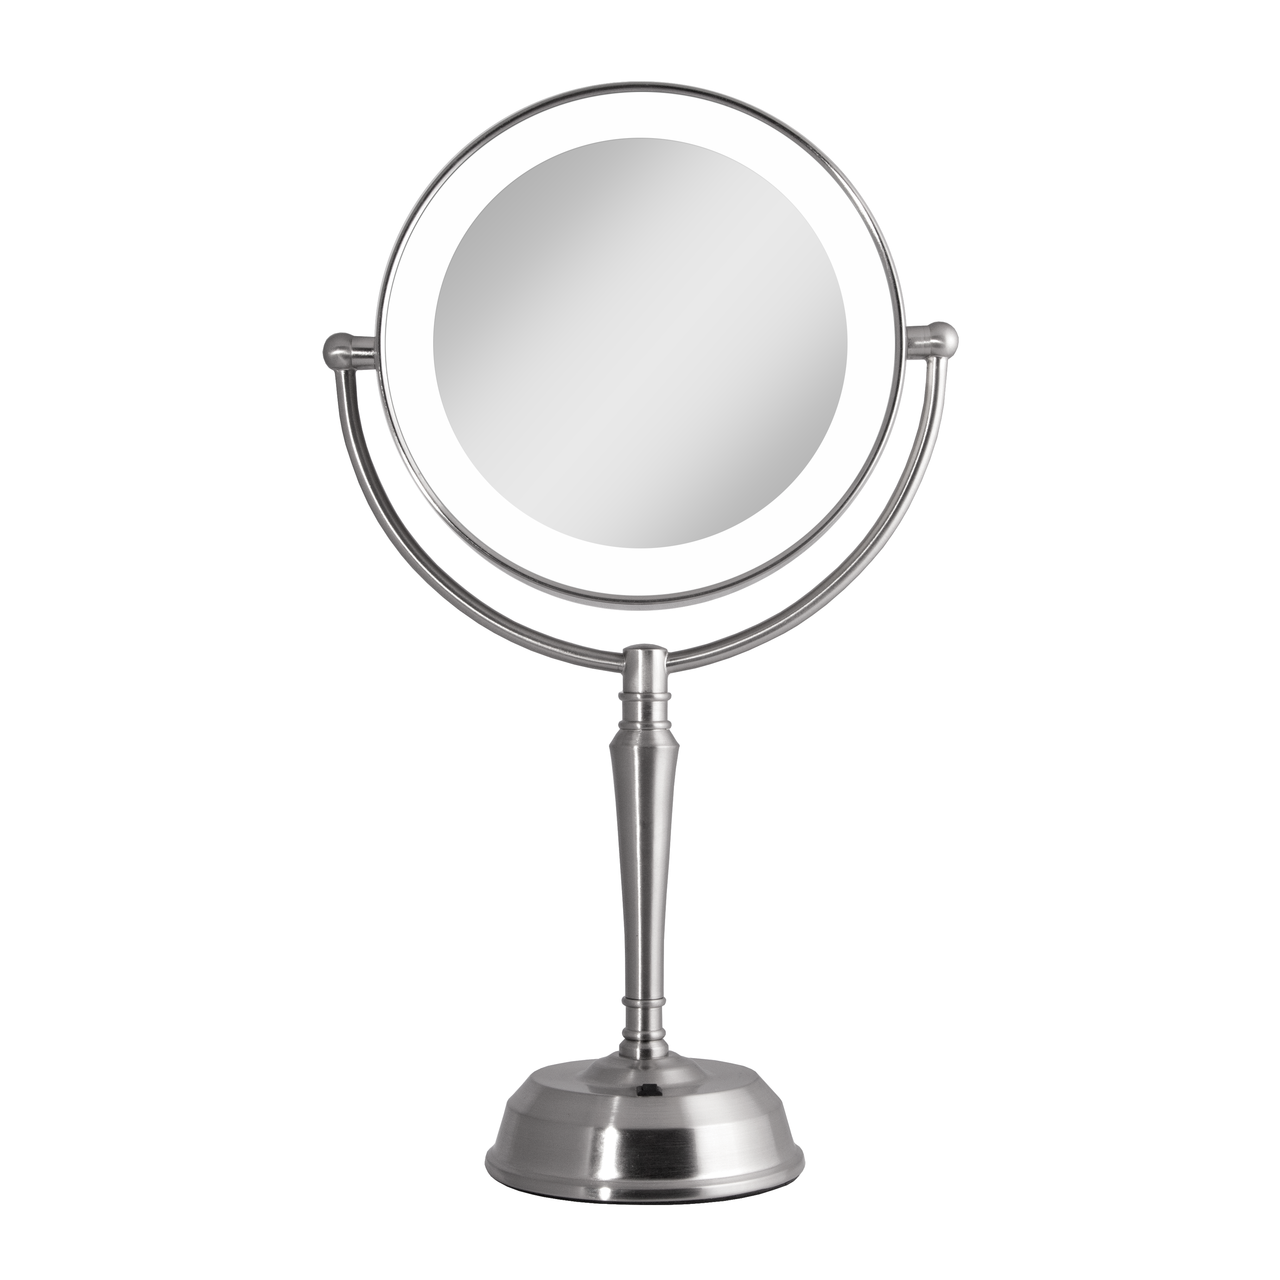 LED Lighted Vanity Mirror with Rechargeable Battery & USB